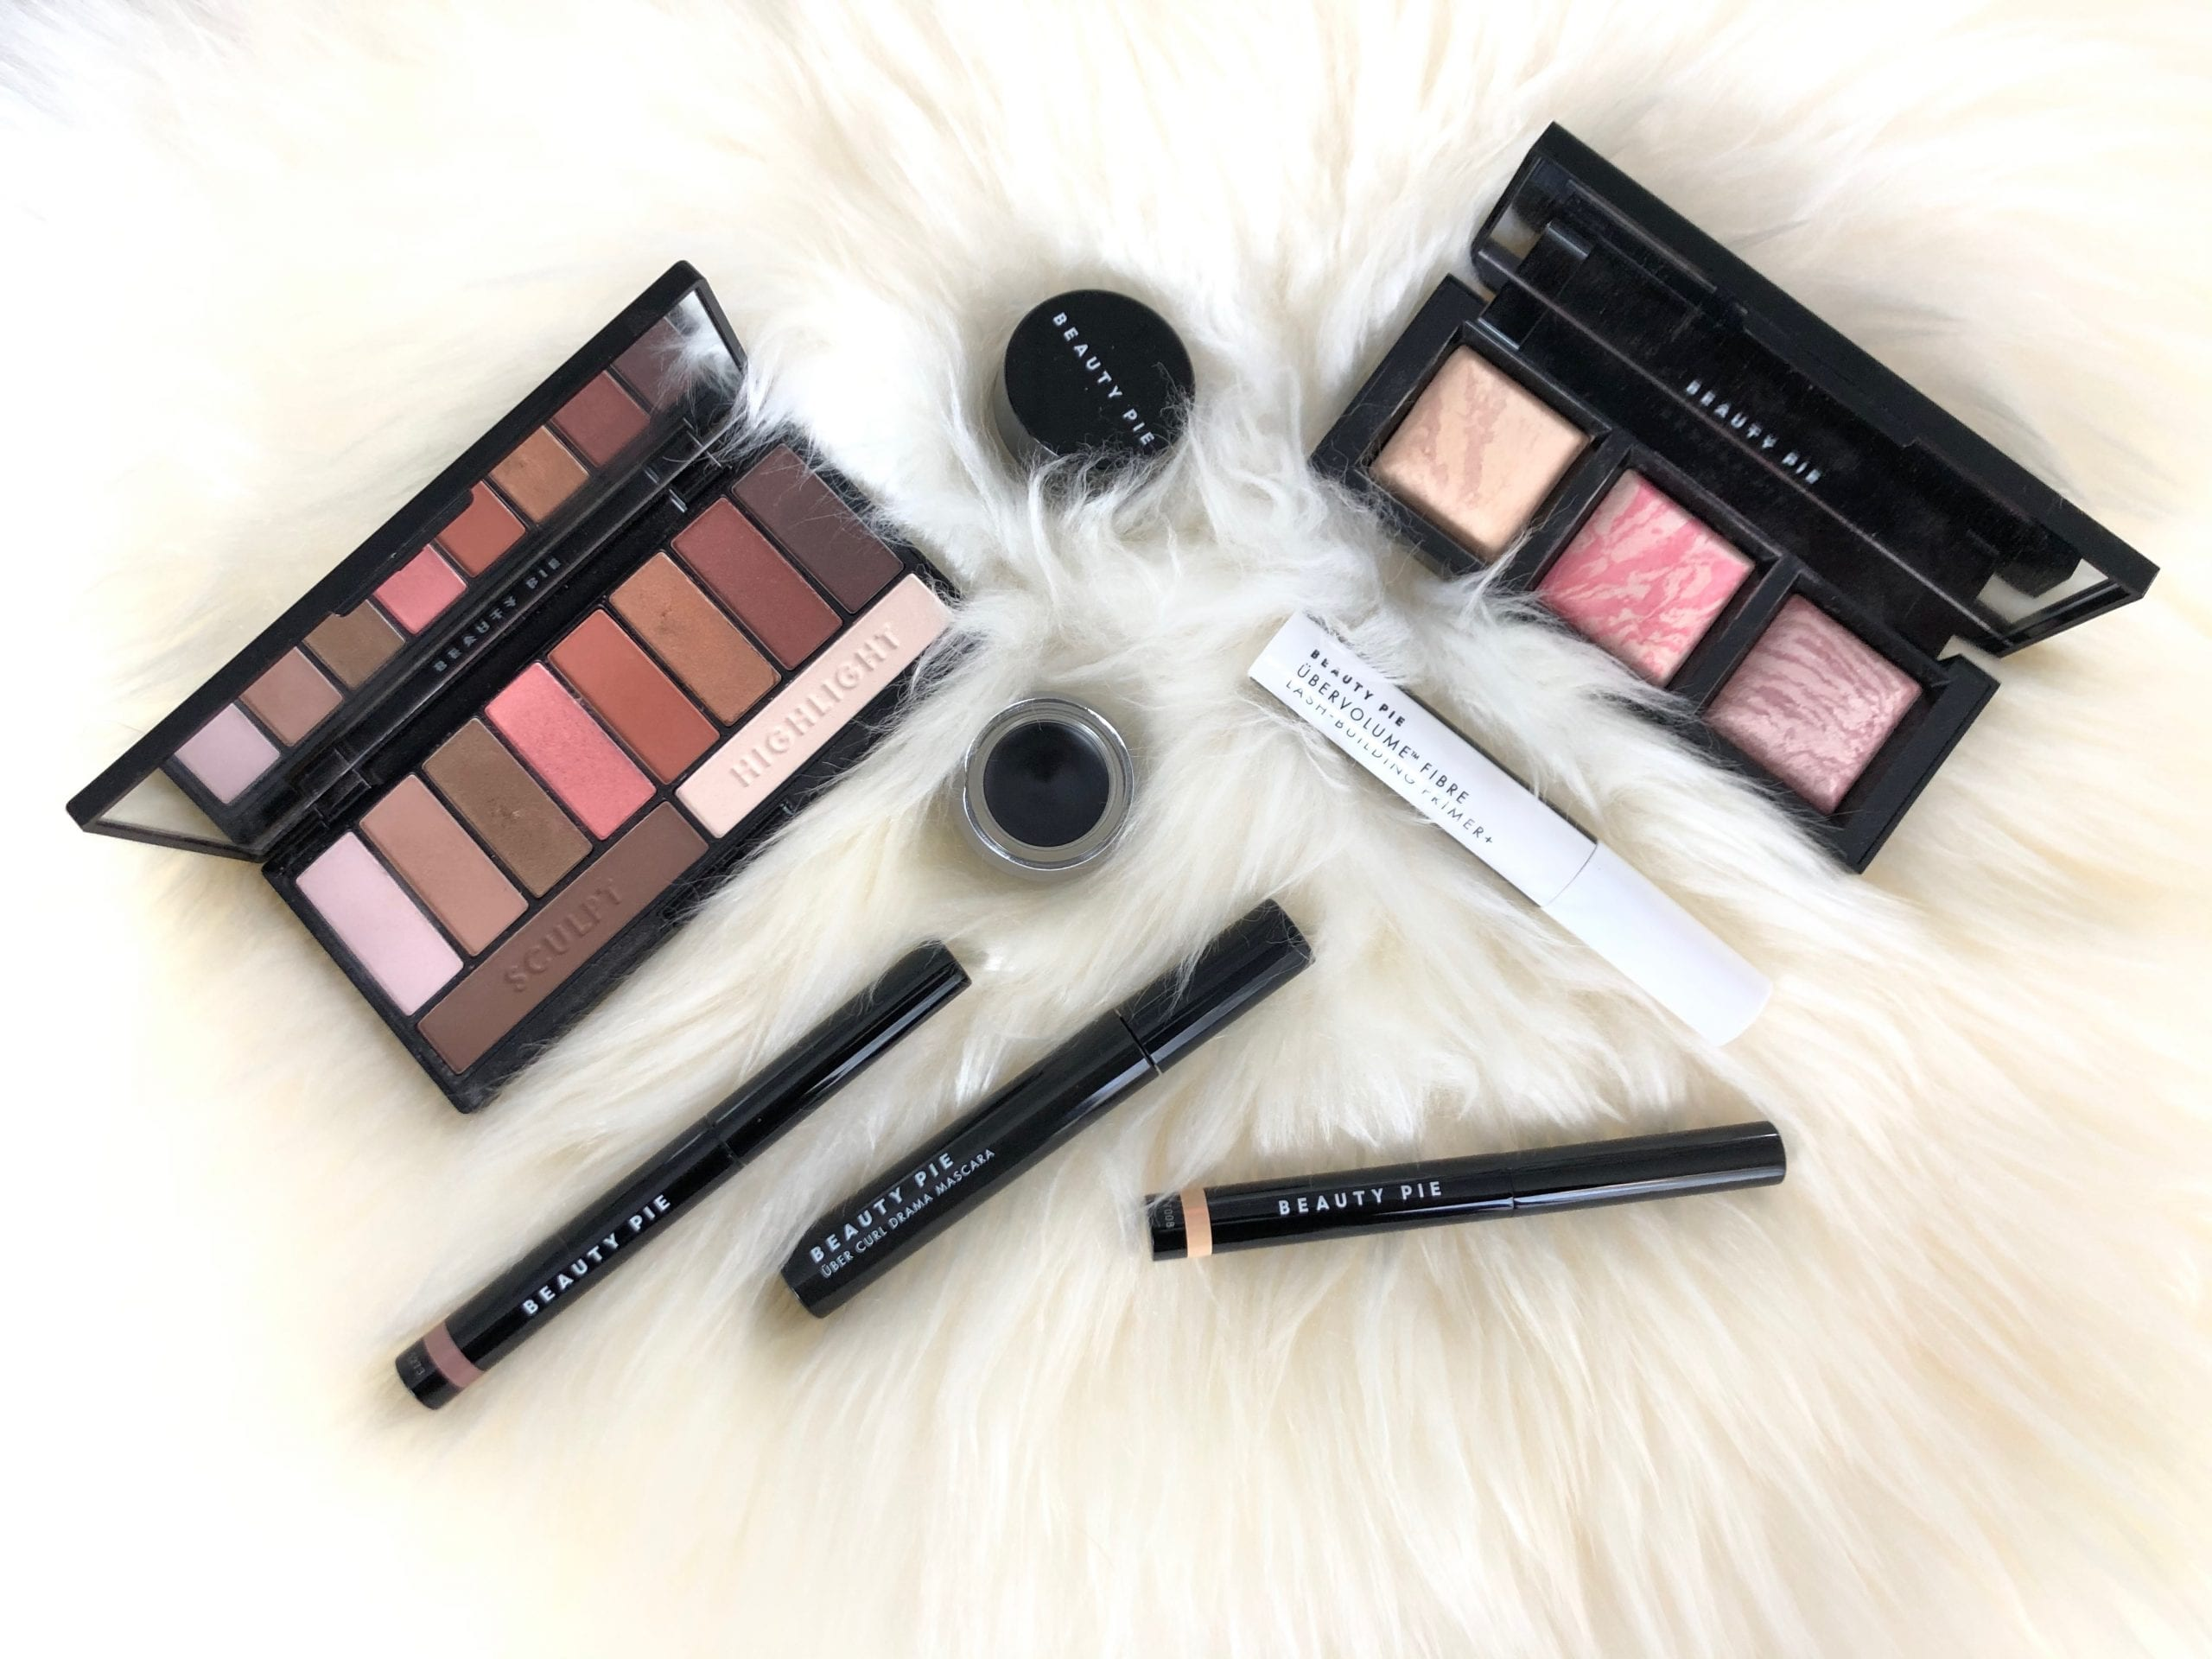 Beauty Pie Makeup Review | Oxford Makeup Artist Beauty Pie